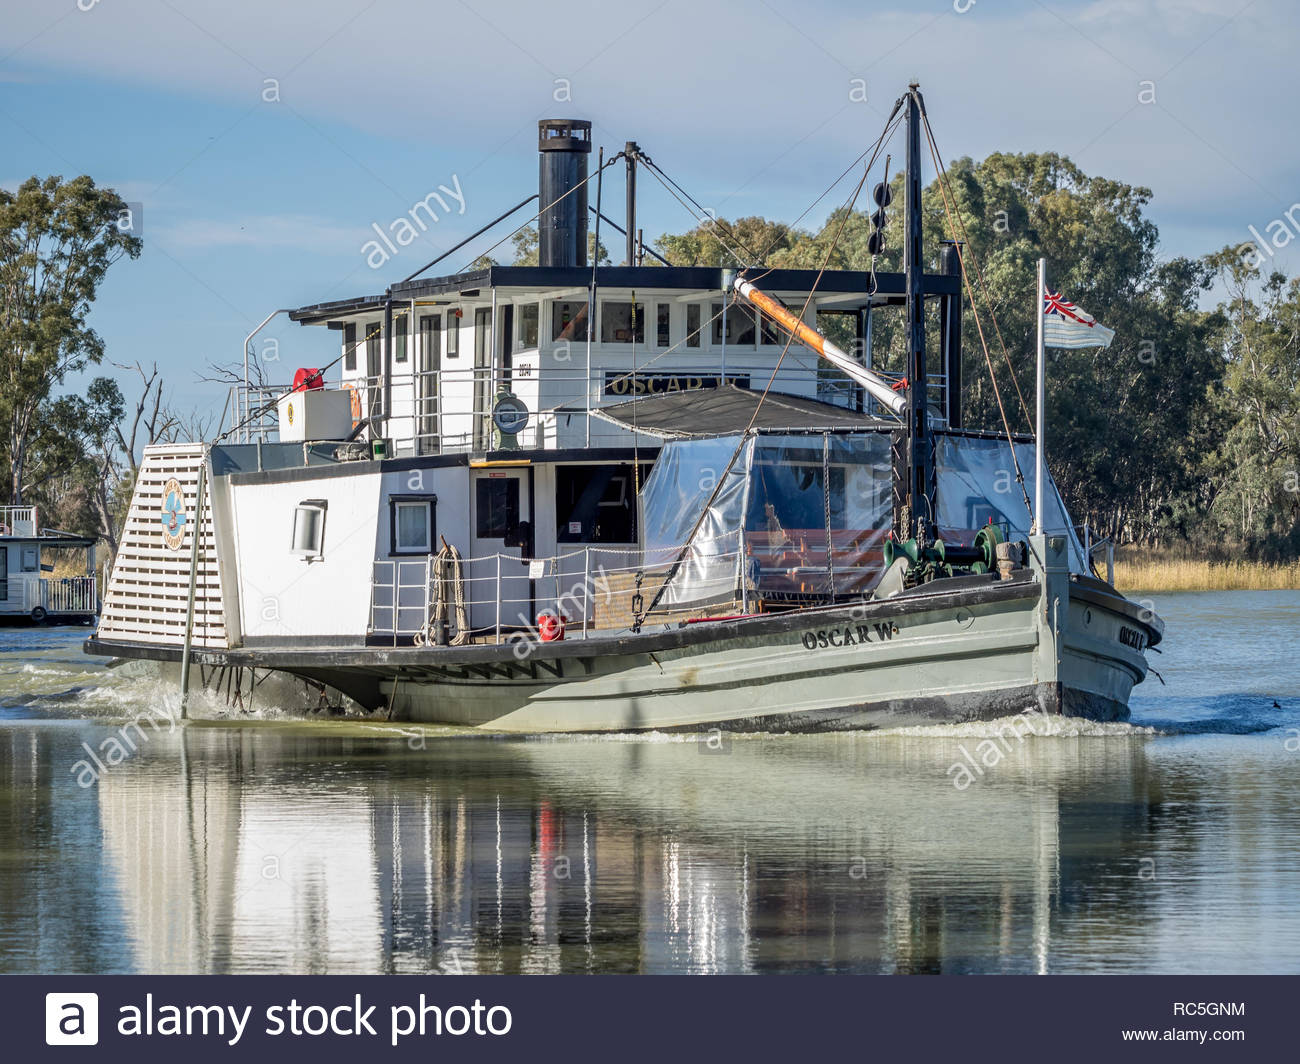 OVERLAND CORNER, SOUTH AUSTRALIA, August 20th, 2017: Paddlesteamer PS Oscar 'W' at Overland Corner, heading home to Goolwa after towing the Murray Riv - Stock Image